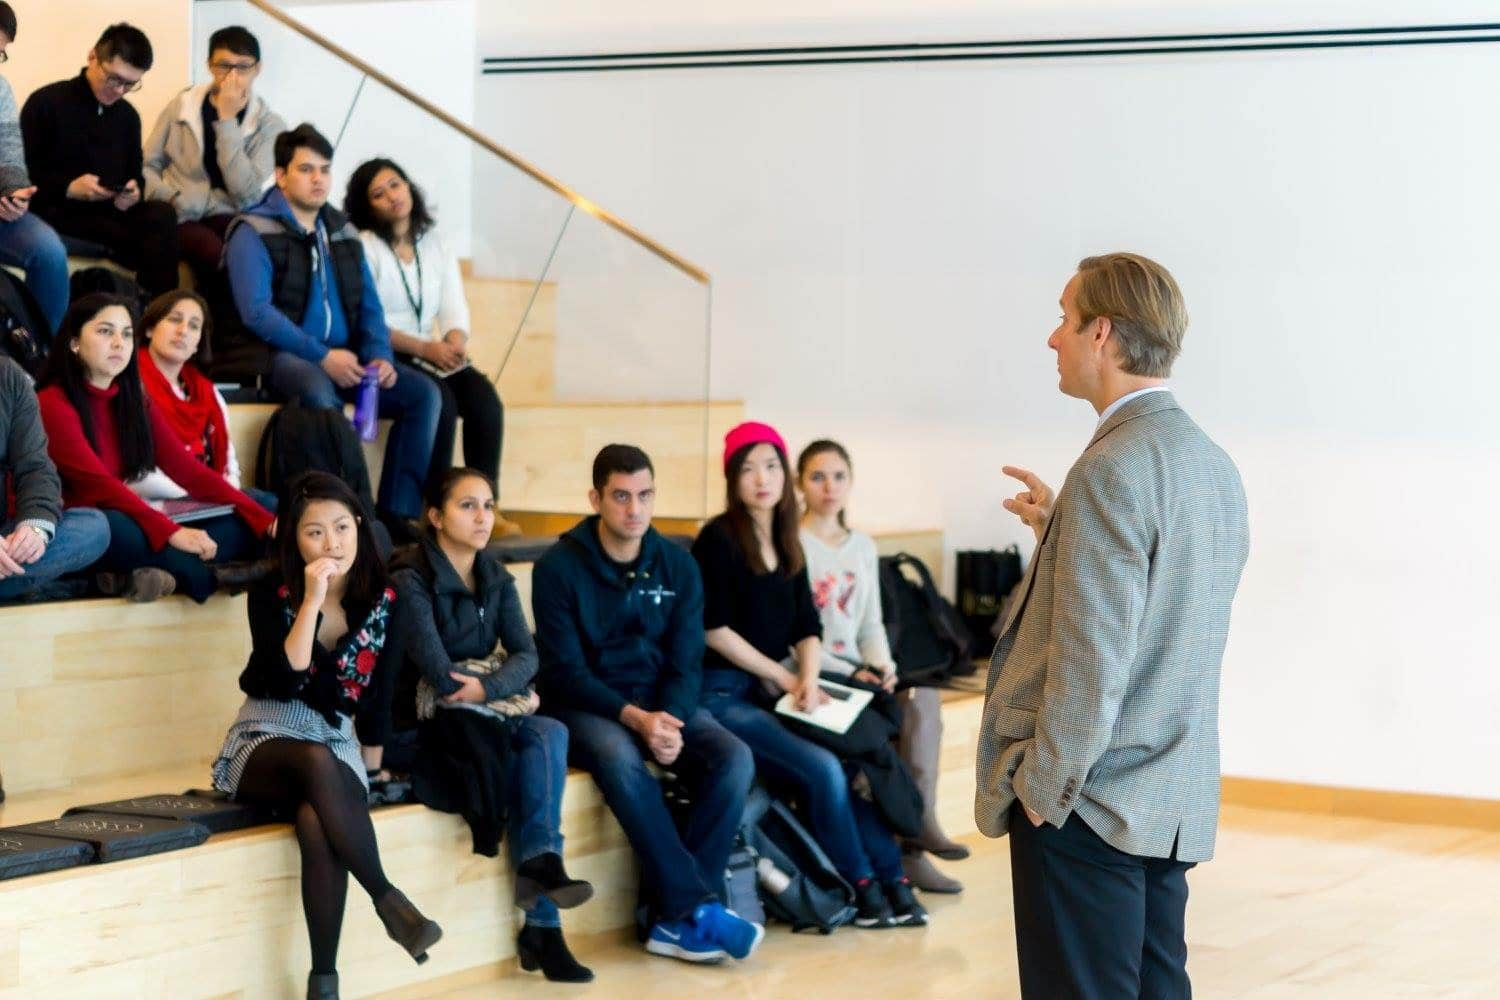 A multicultural classroom at Hult